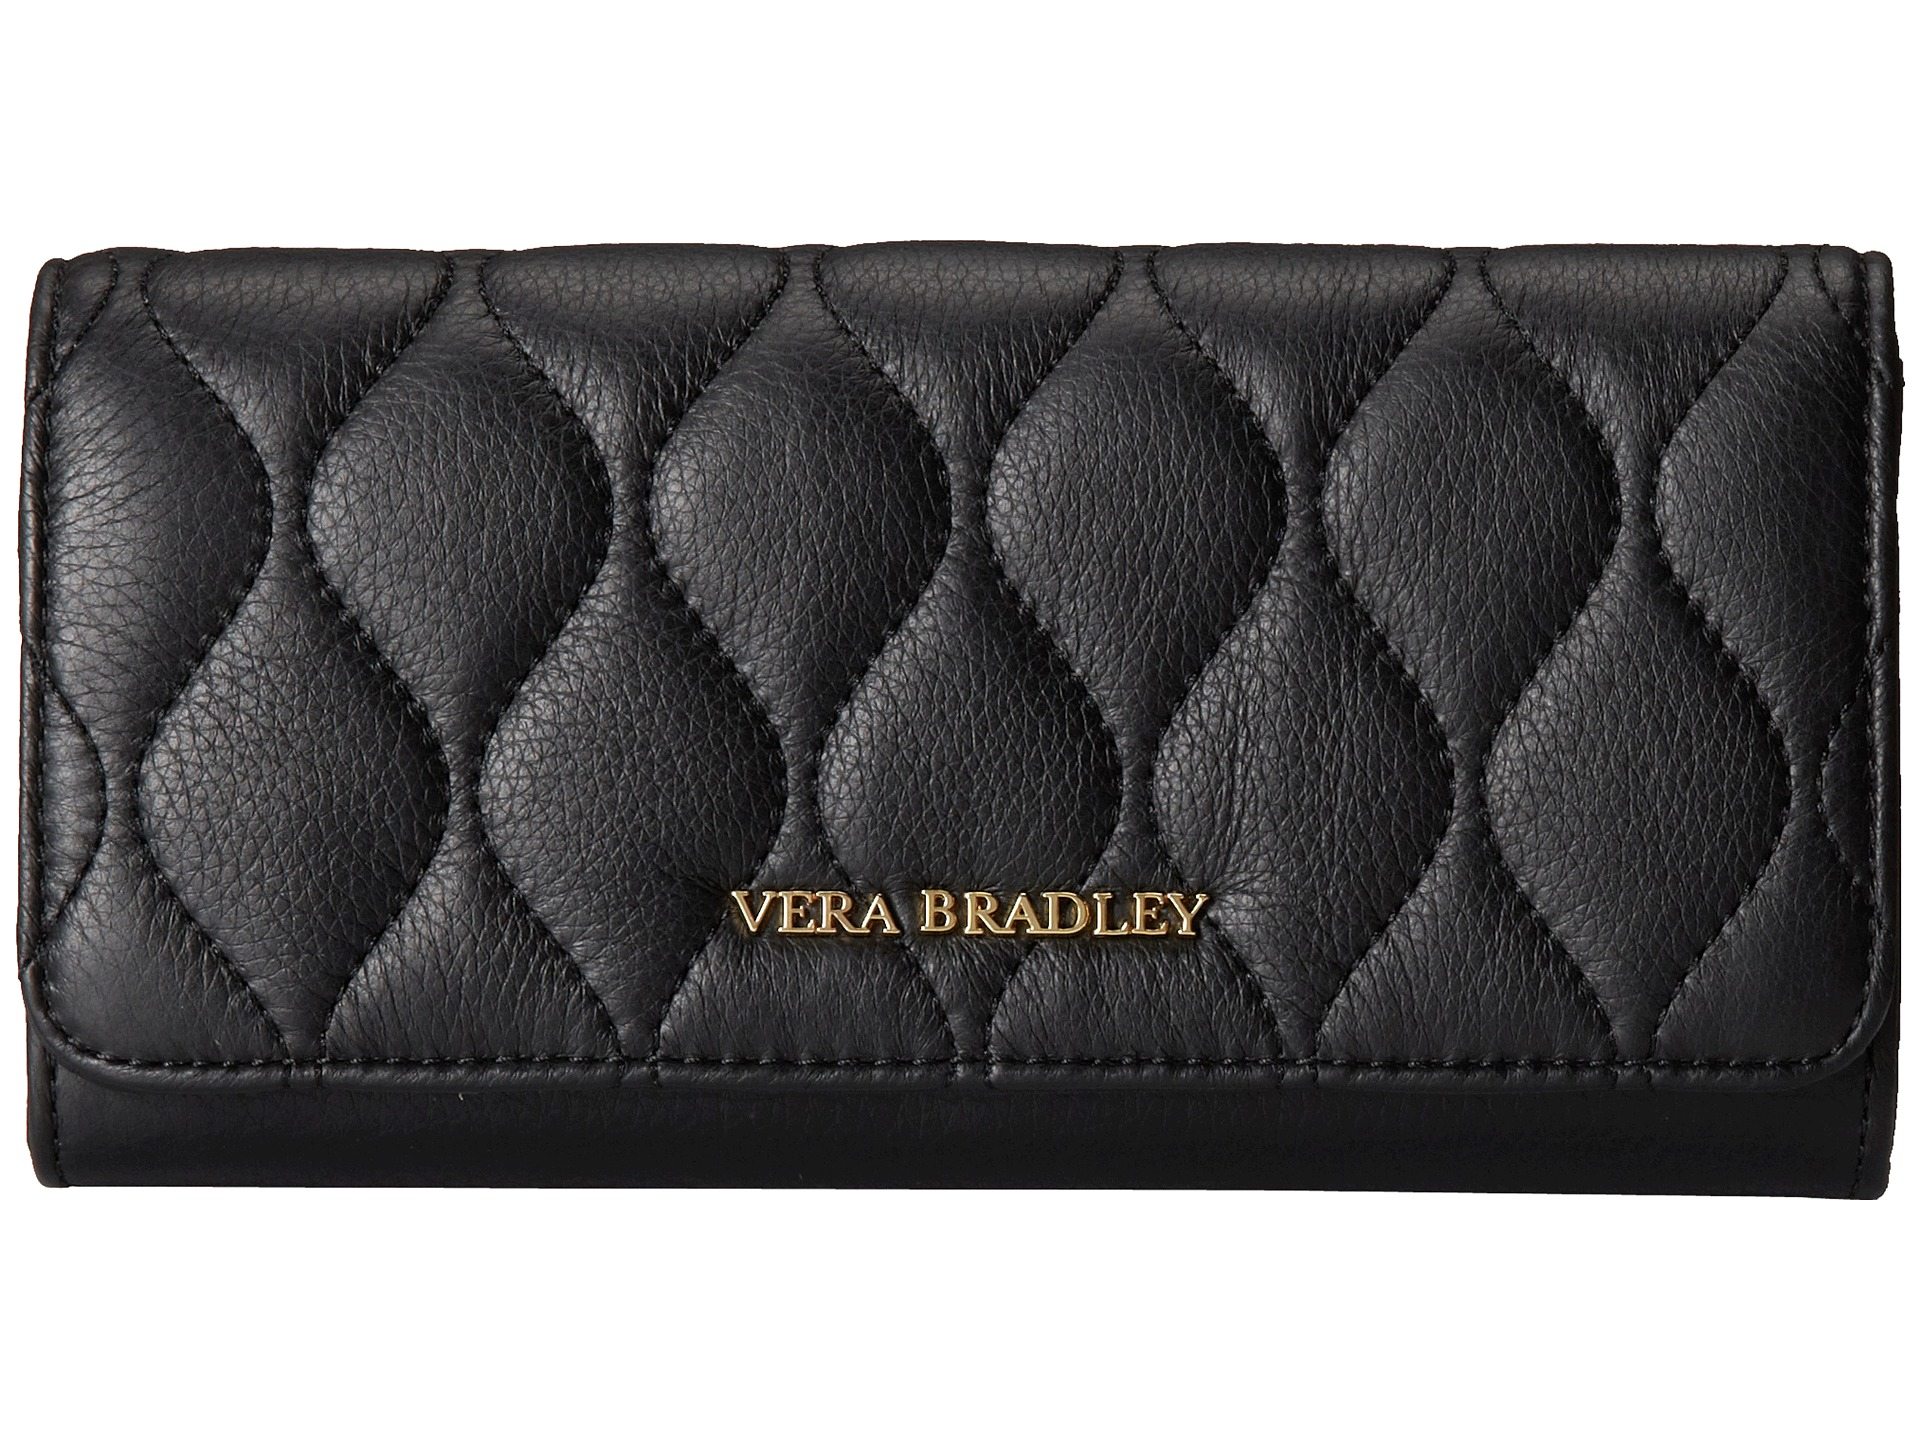 Vera bradley Quilted Audrey Wallet in Black | Lyst : black quilted wallet - Adamdwight.com